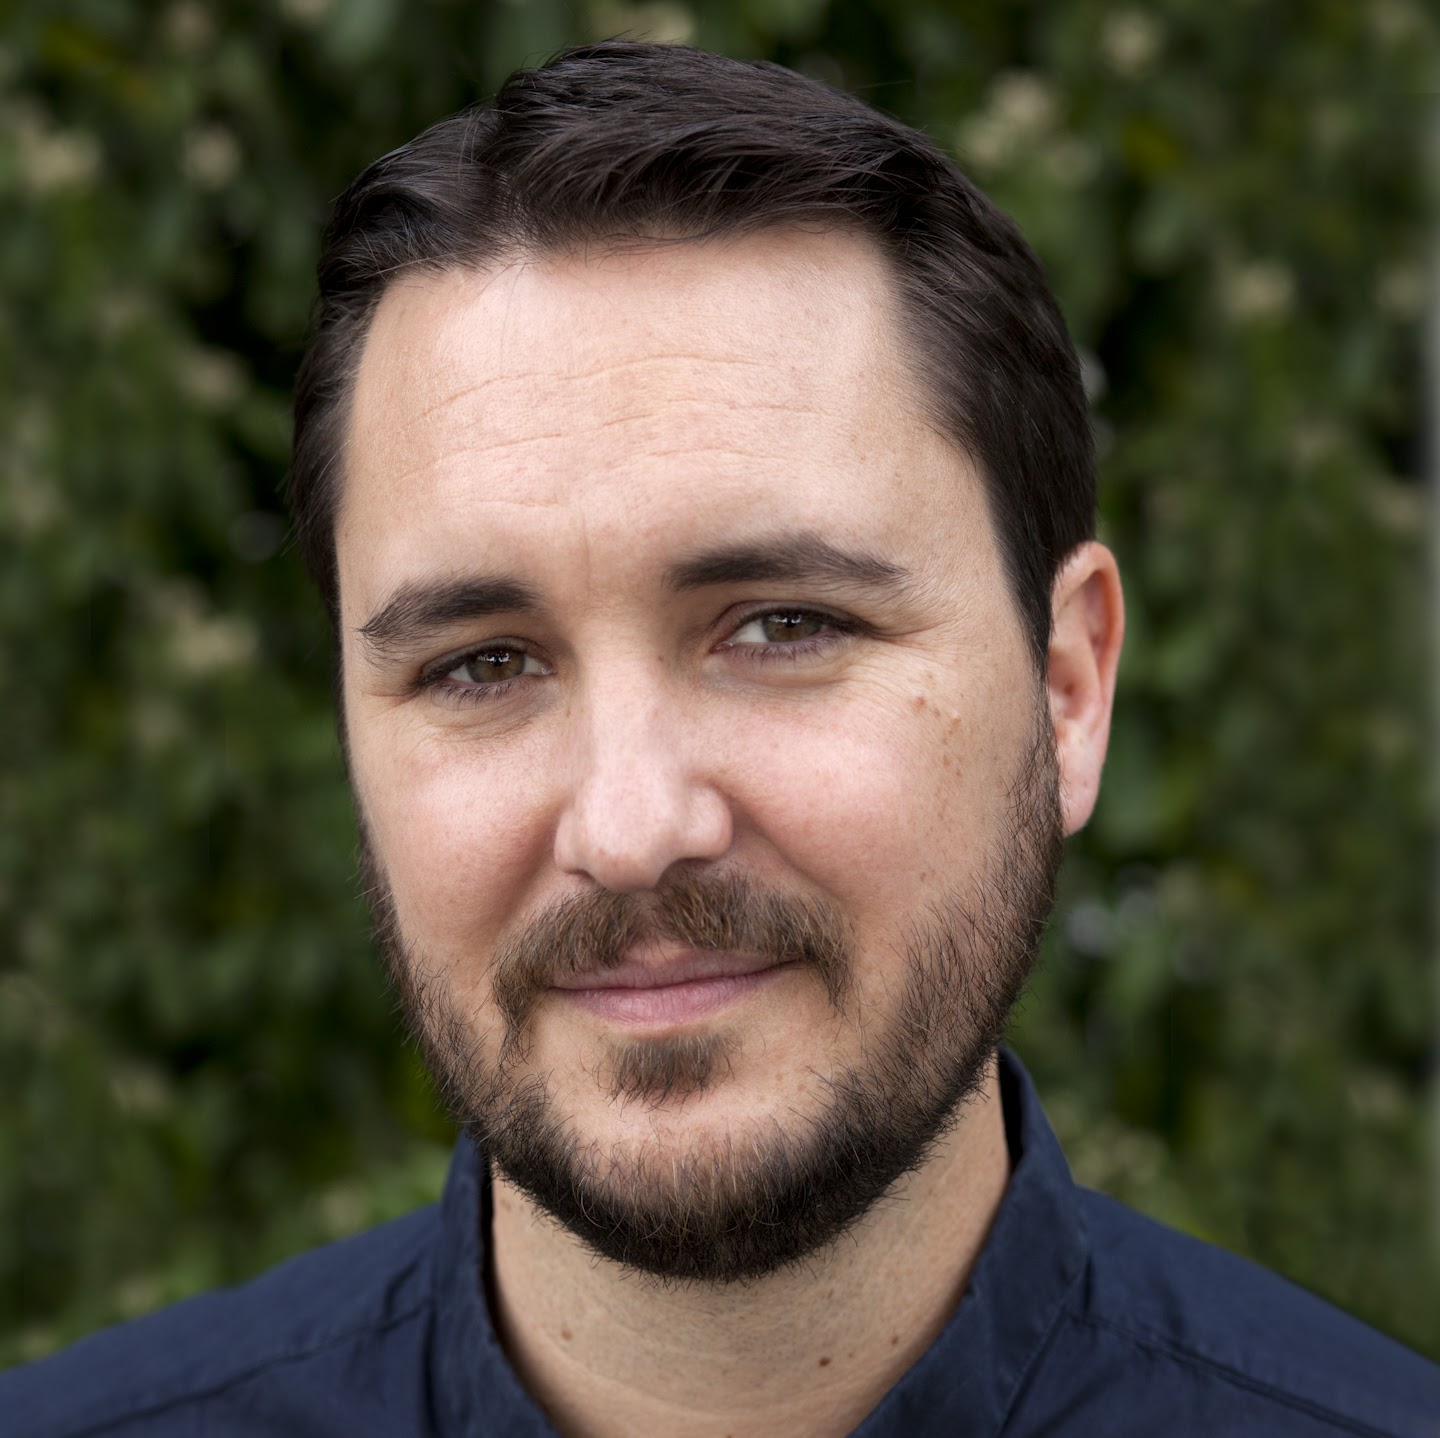 image of Wil Wheaton of Acquisitions, Inc. | TheGeekPages.com